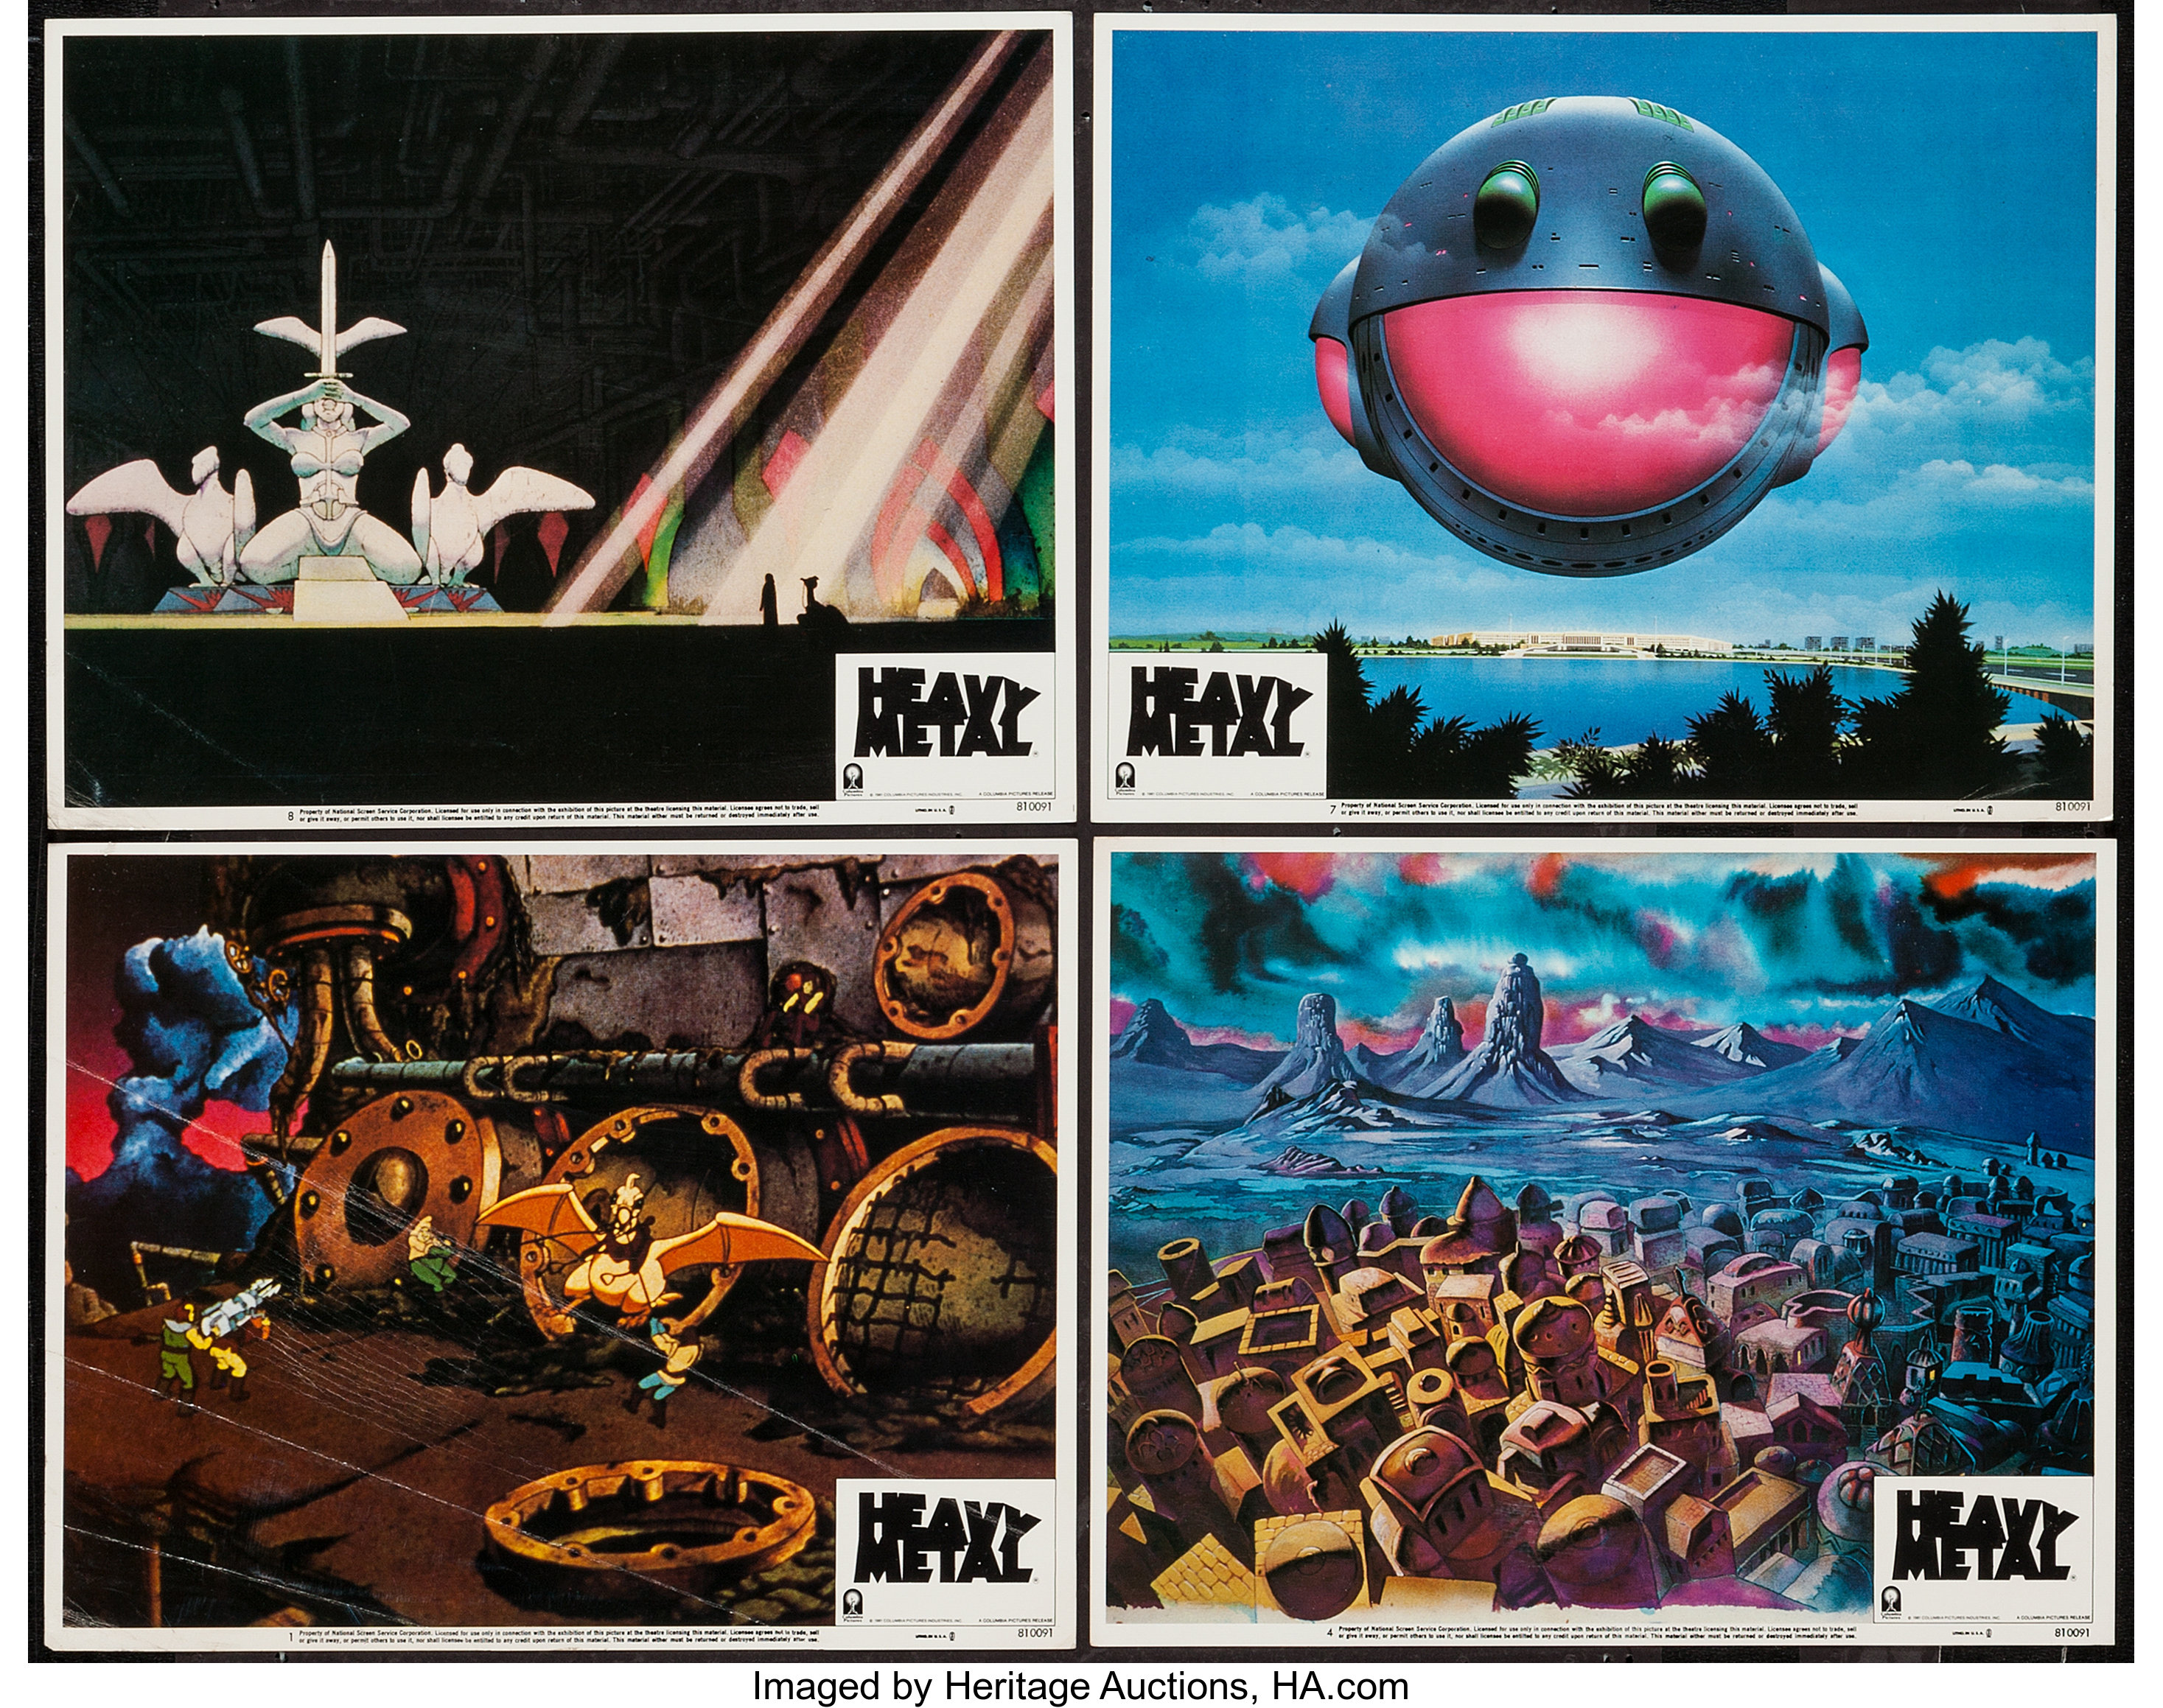 Heavy Metal Columbia 1981 Lobby Cards 4 11 X 14 Lot 51213 Heritage Auctions